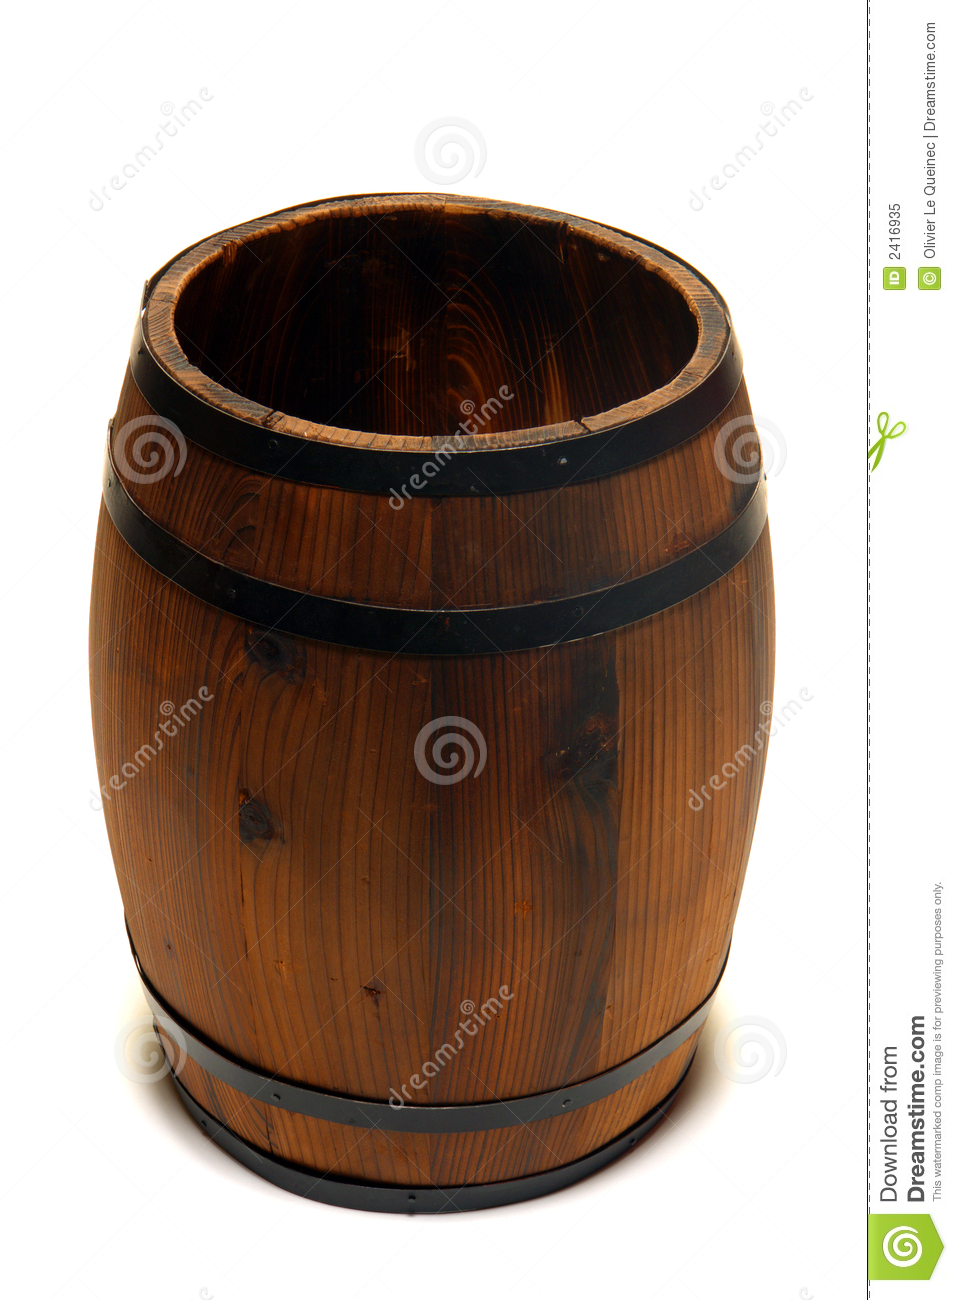 old whisky barrel or wine cask wood container royalty free